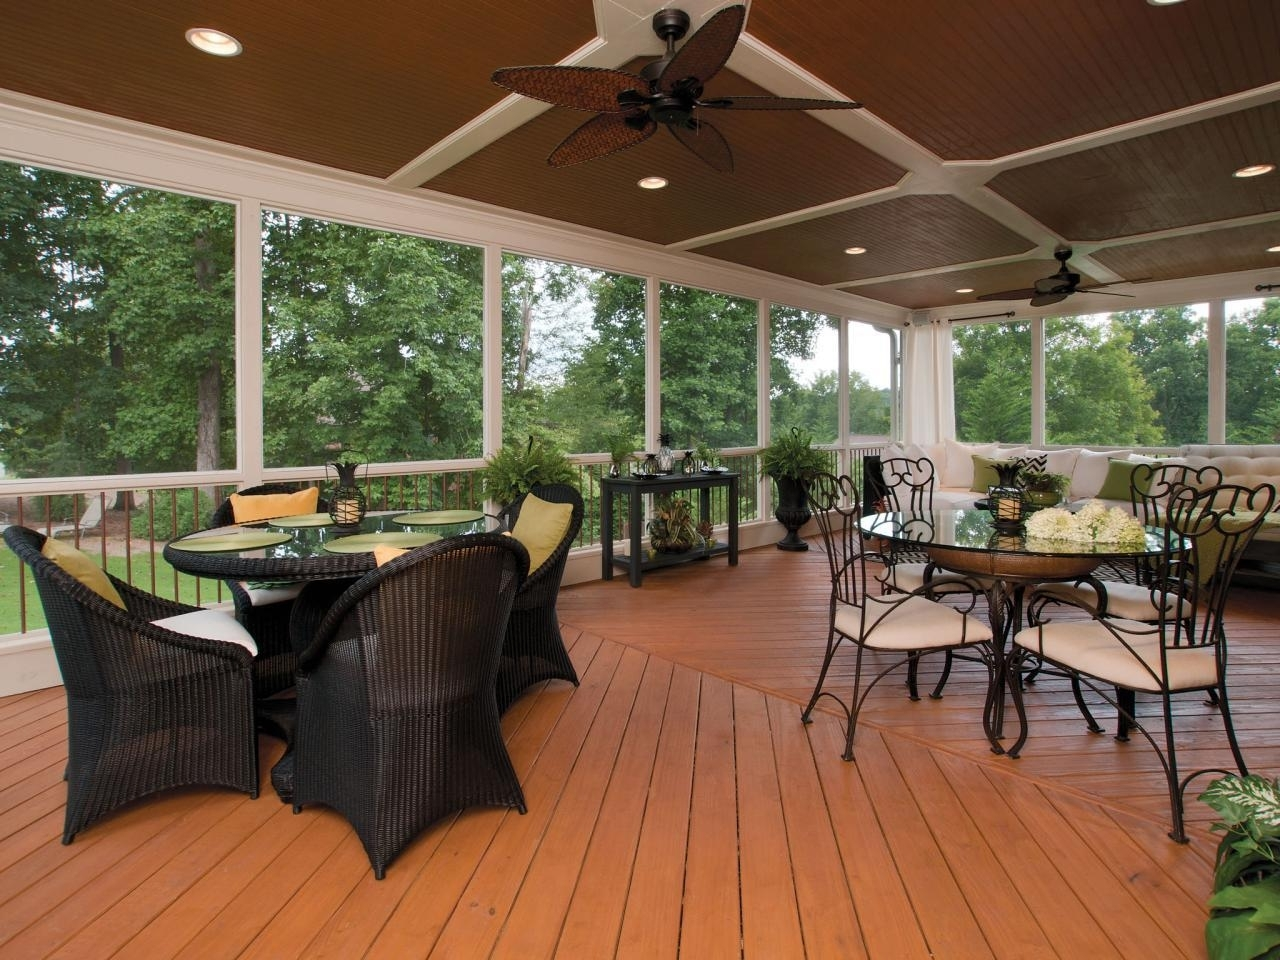 Trendy Outdoor Ceiling Fans For Decks Inside Lighting Your Lovely Outdoor Porch Ceiling Fans With (View 4 of 20)